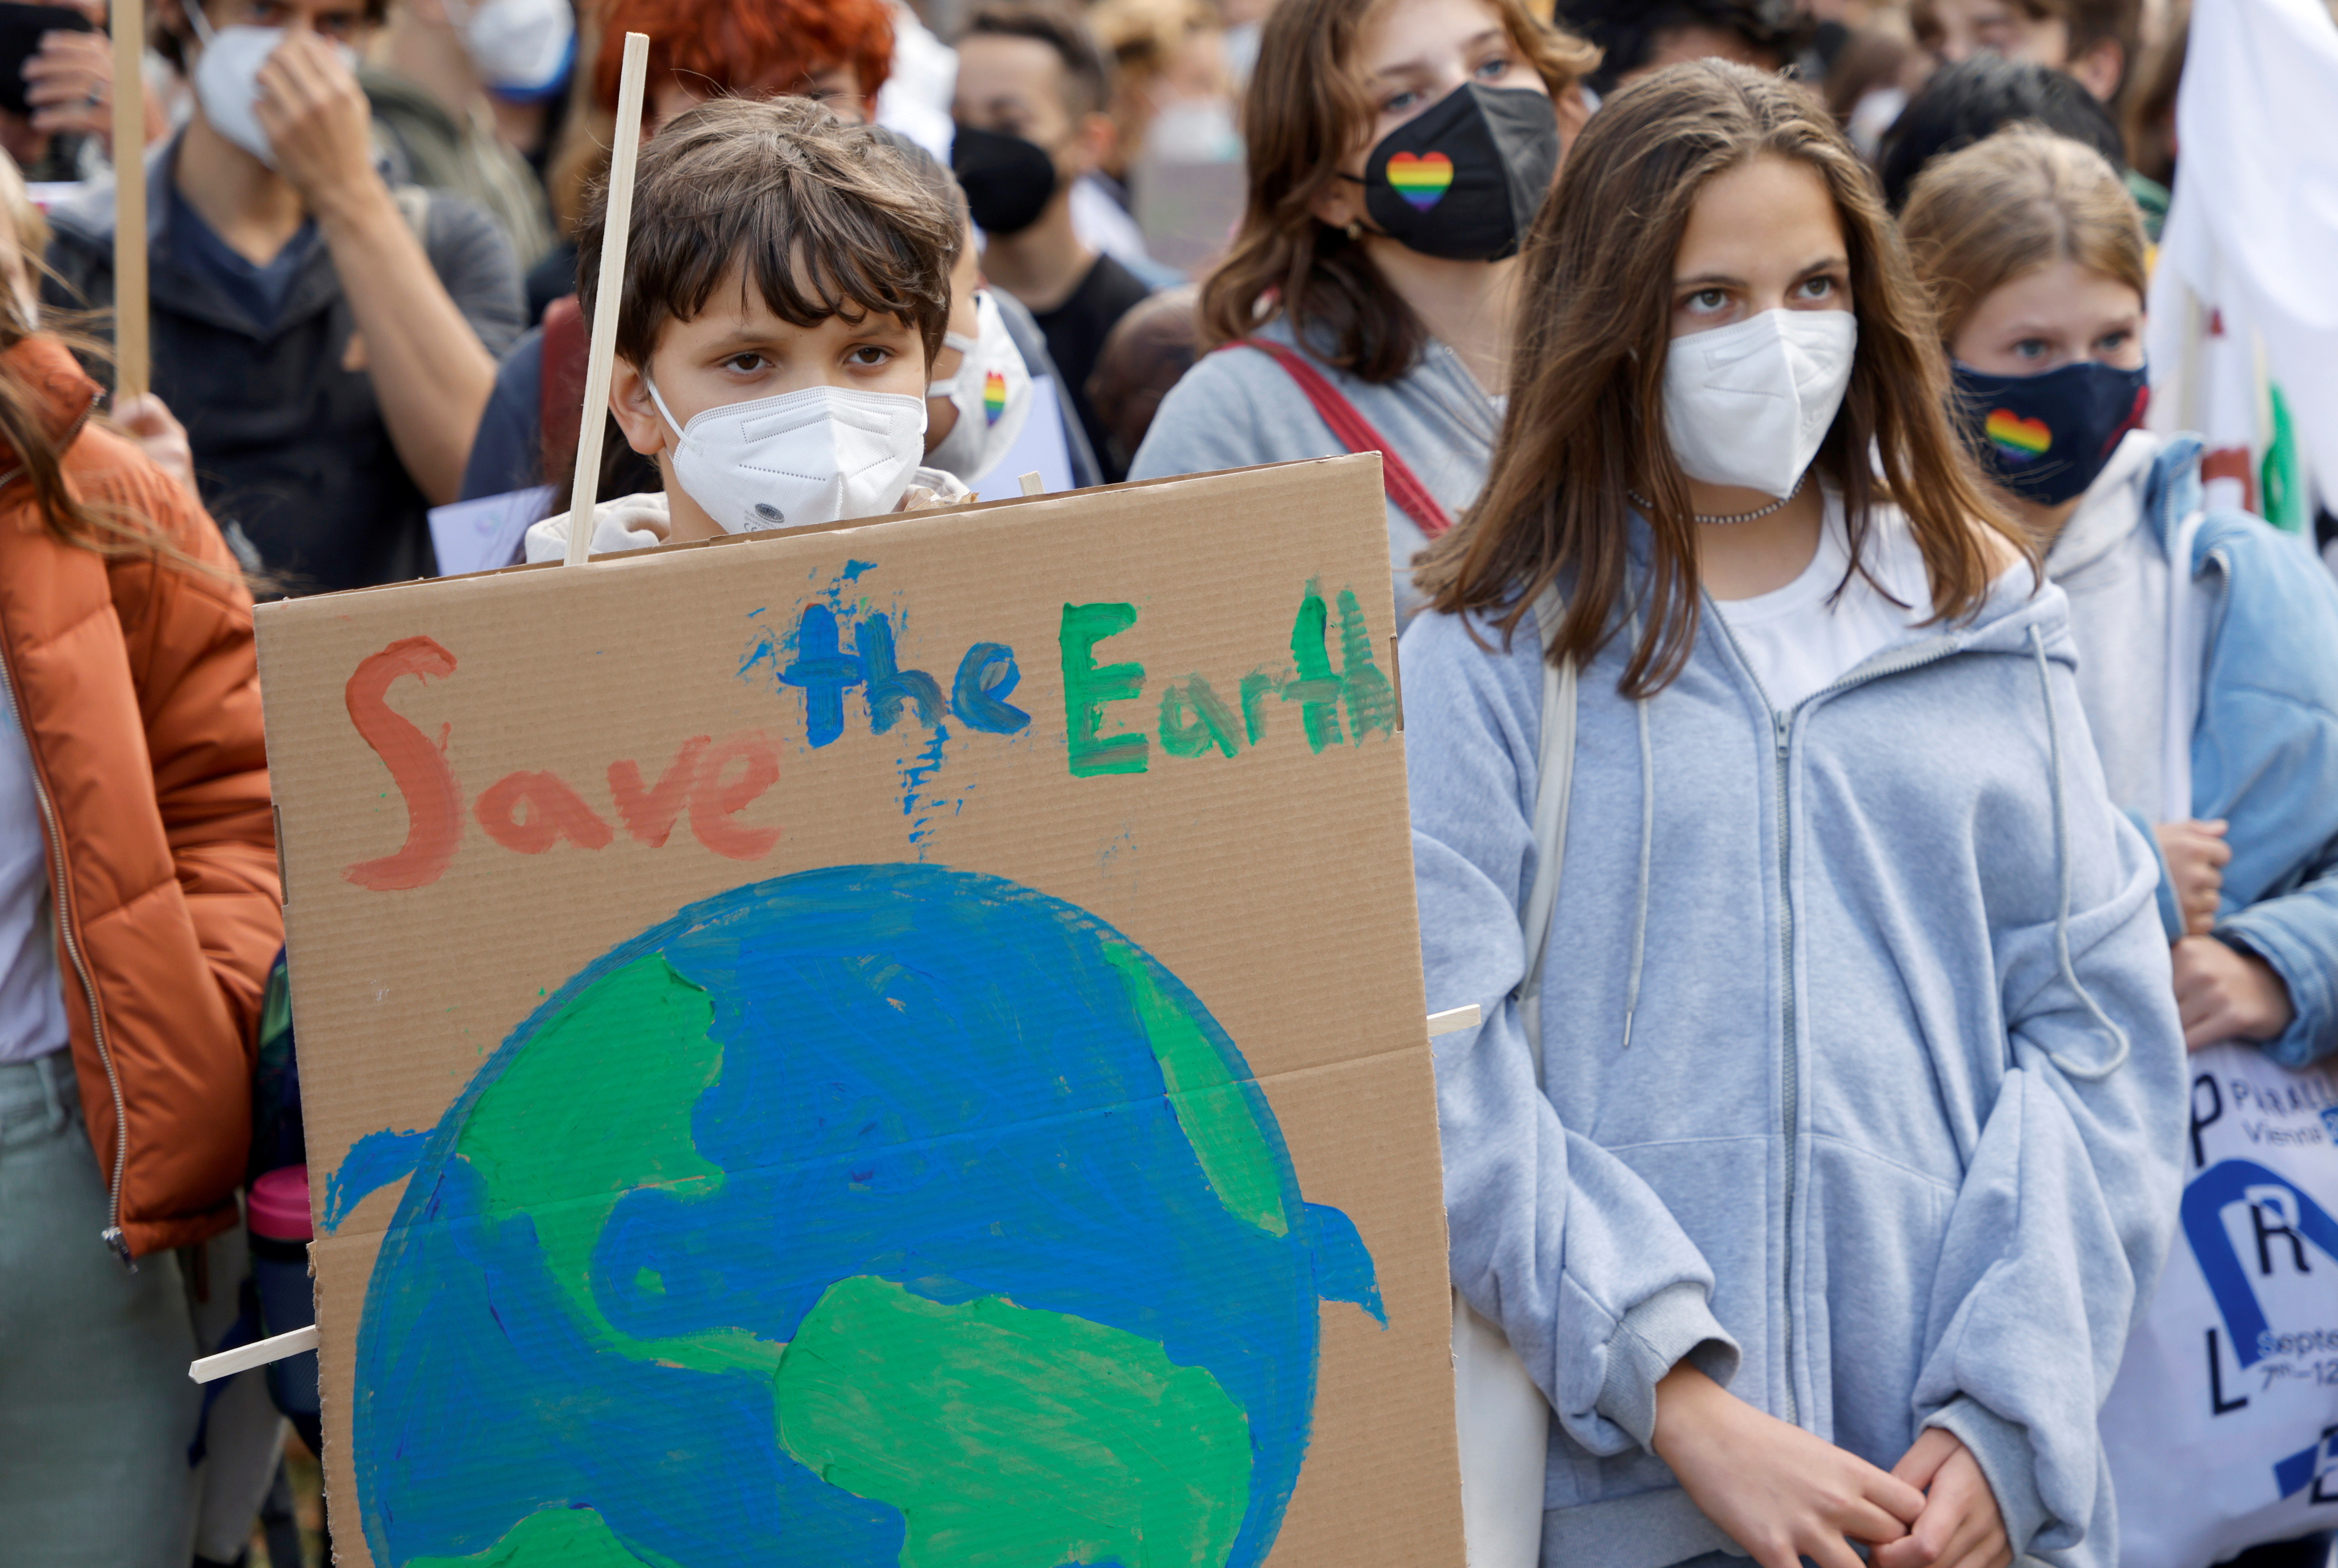 People participate in the Global Climate Strike of the movement Fridays for Future in Vienna, Austria September 24, 2021. REUTERS/Leonhard Foeger - RC2AWP9X32OK